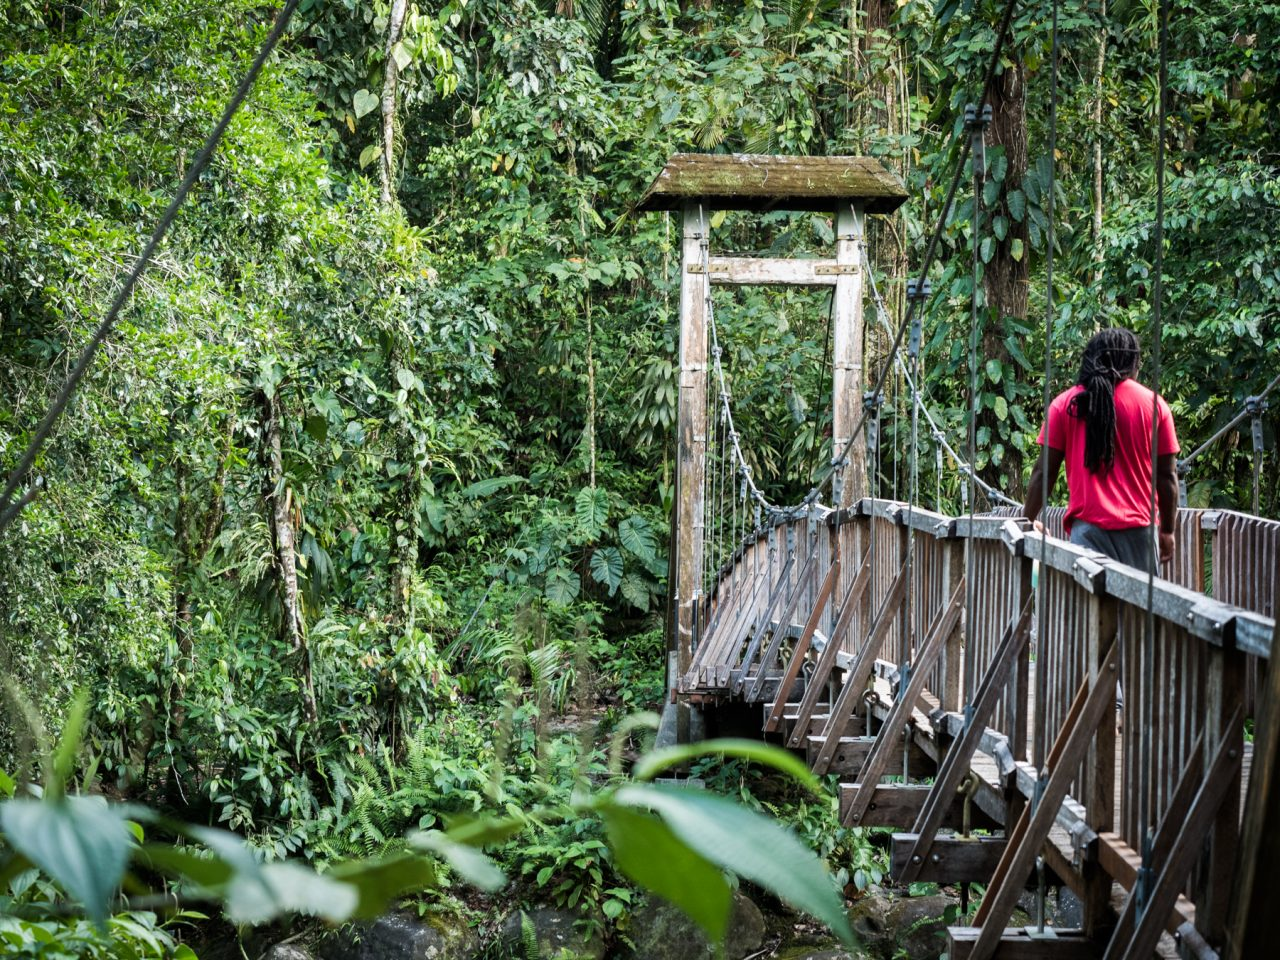 guadeloupe jungle-guadeloupe foret tropicale-riviere guadeloupe